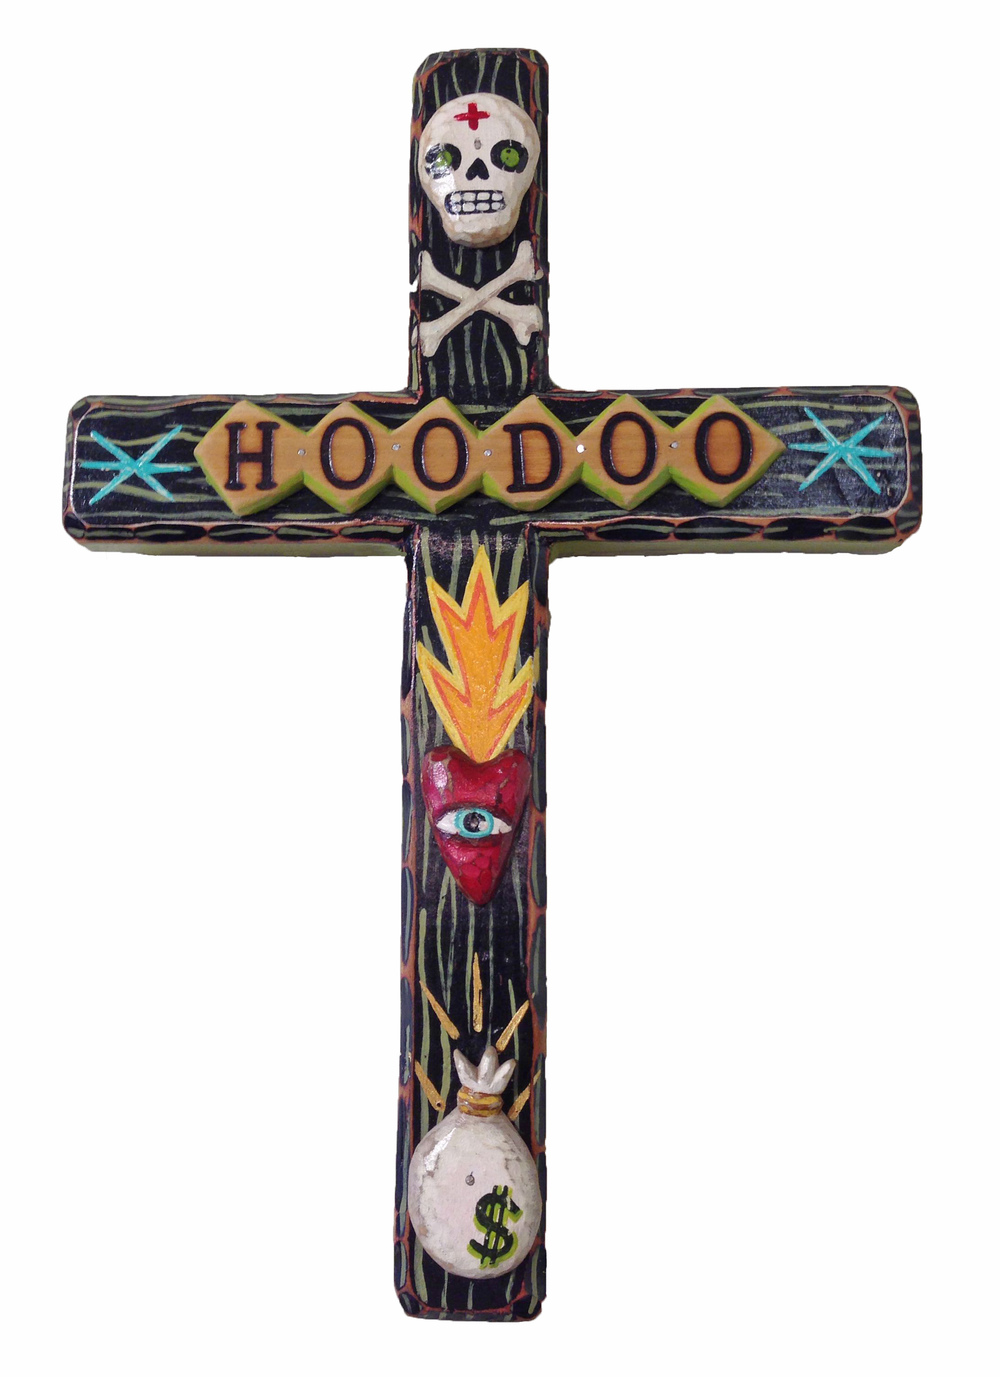 Hoodoo Cross by Bryan Cunningham